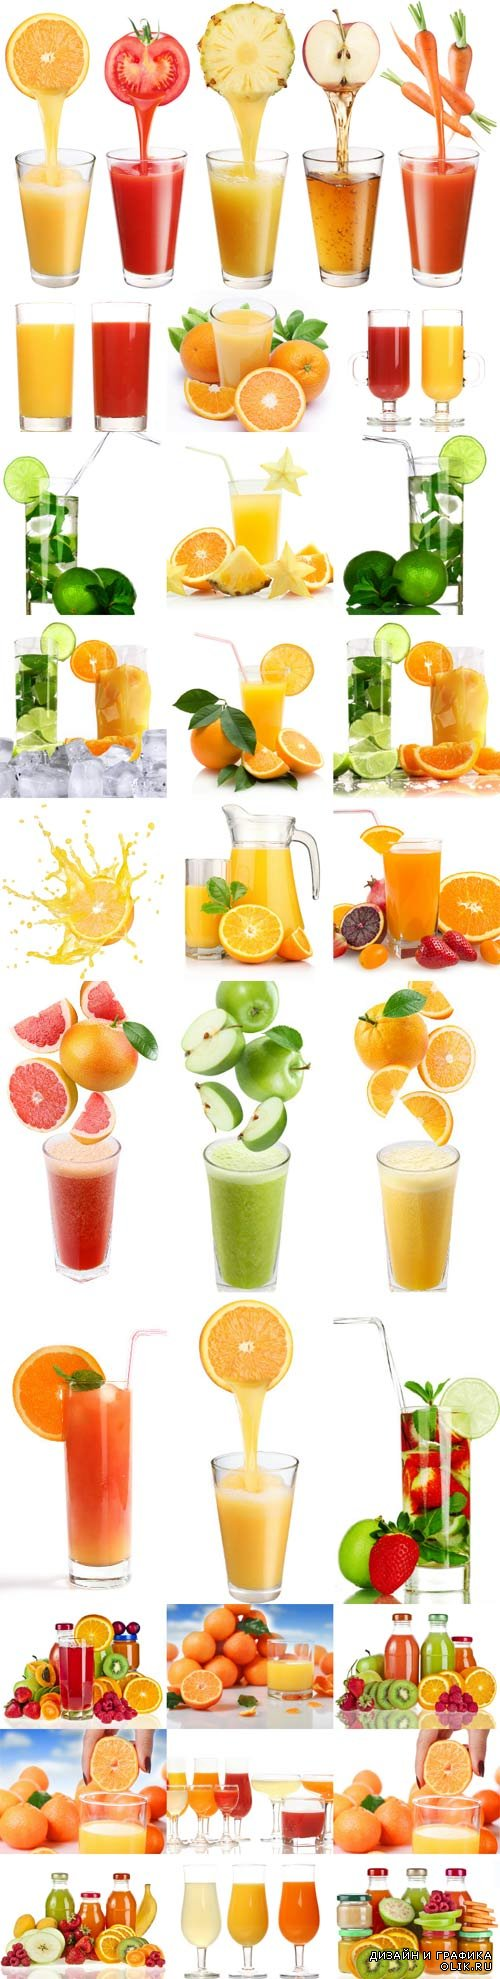 Freshly squeezed fruit juices stock photos